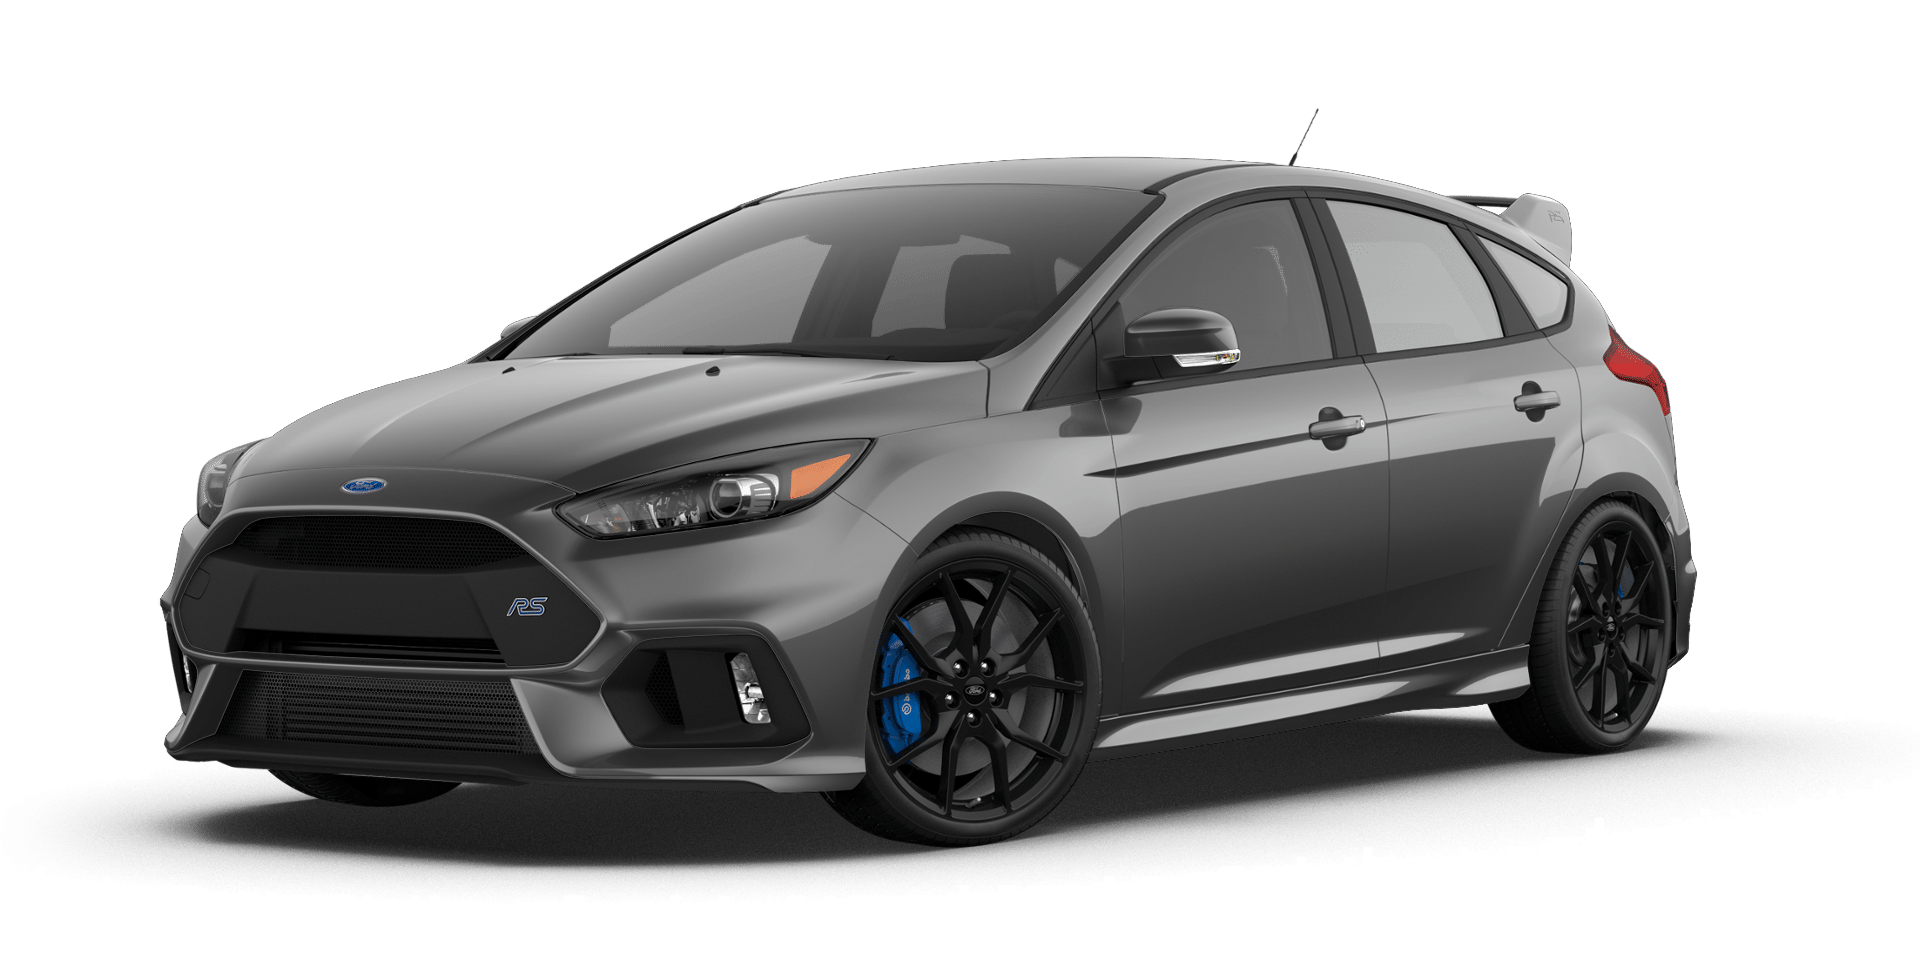 Ford Focus Rs Grey What Color Is Your Focus Rs Going To Be